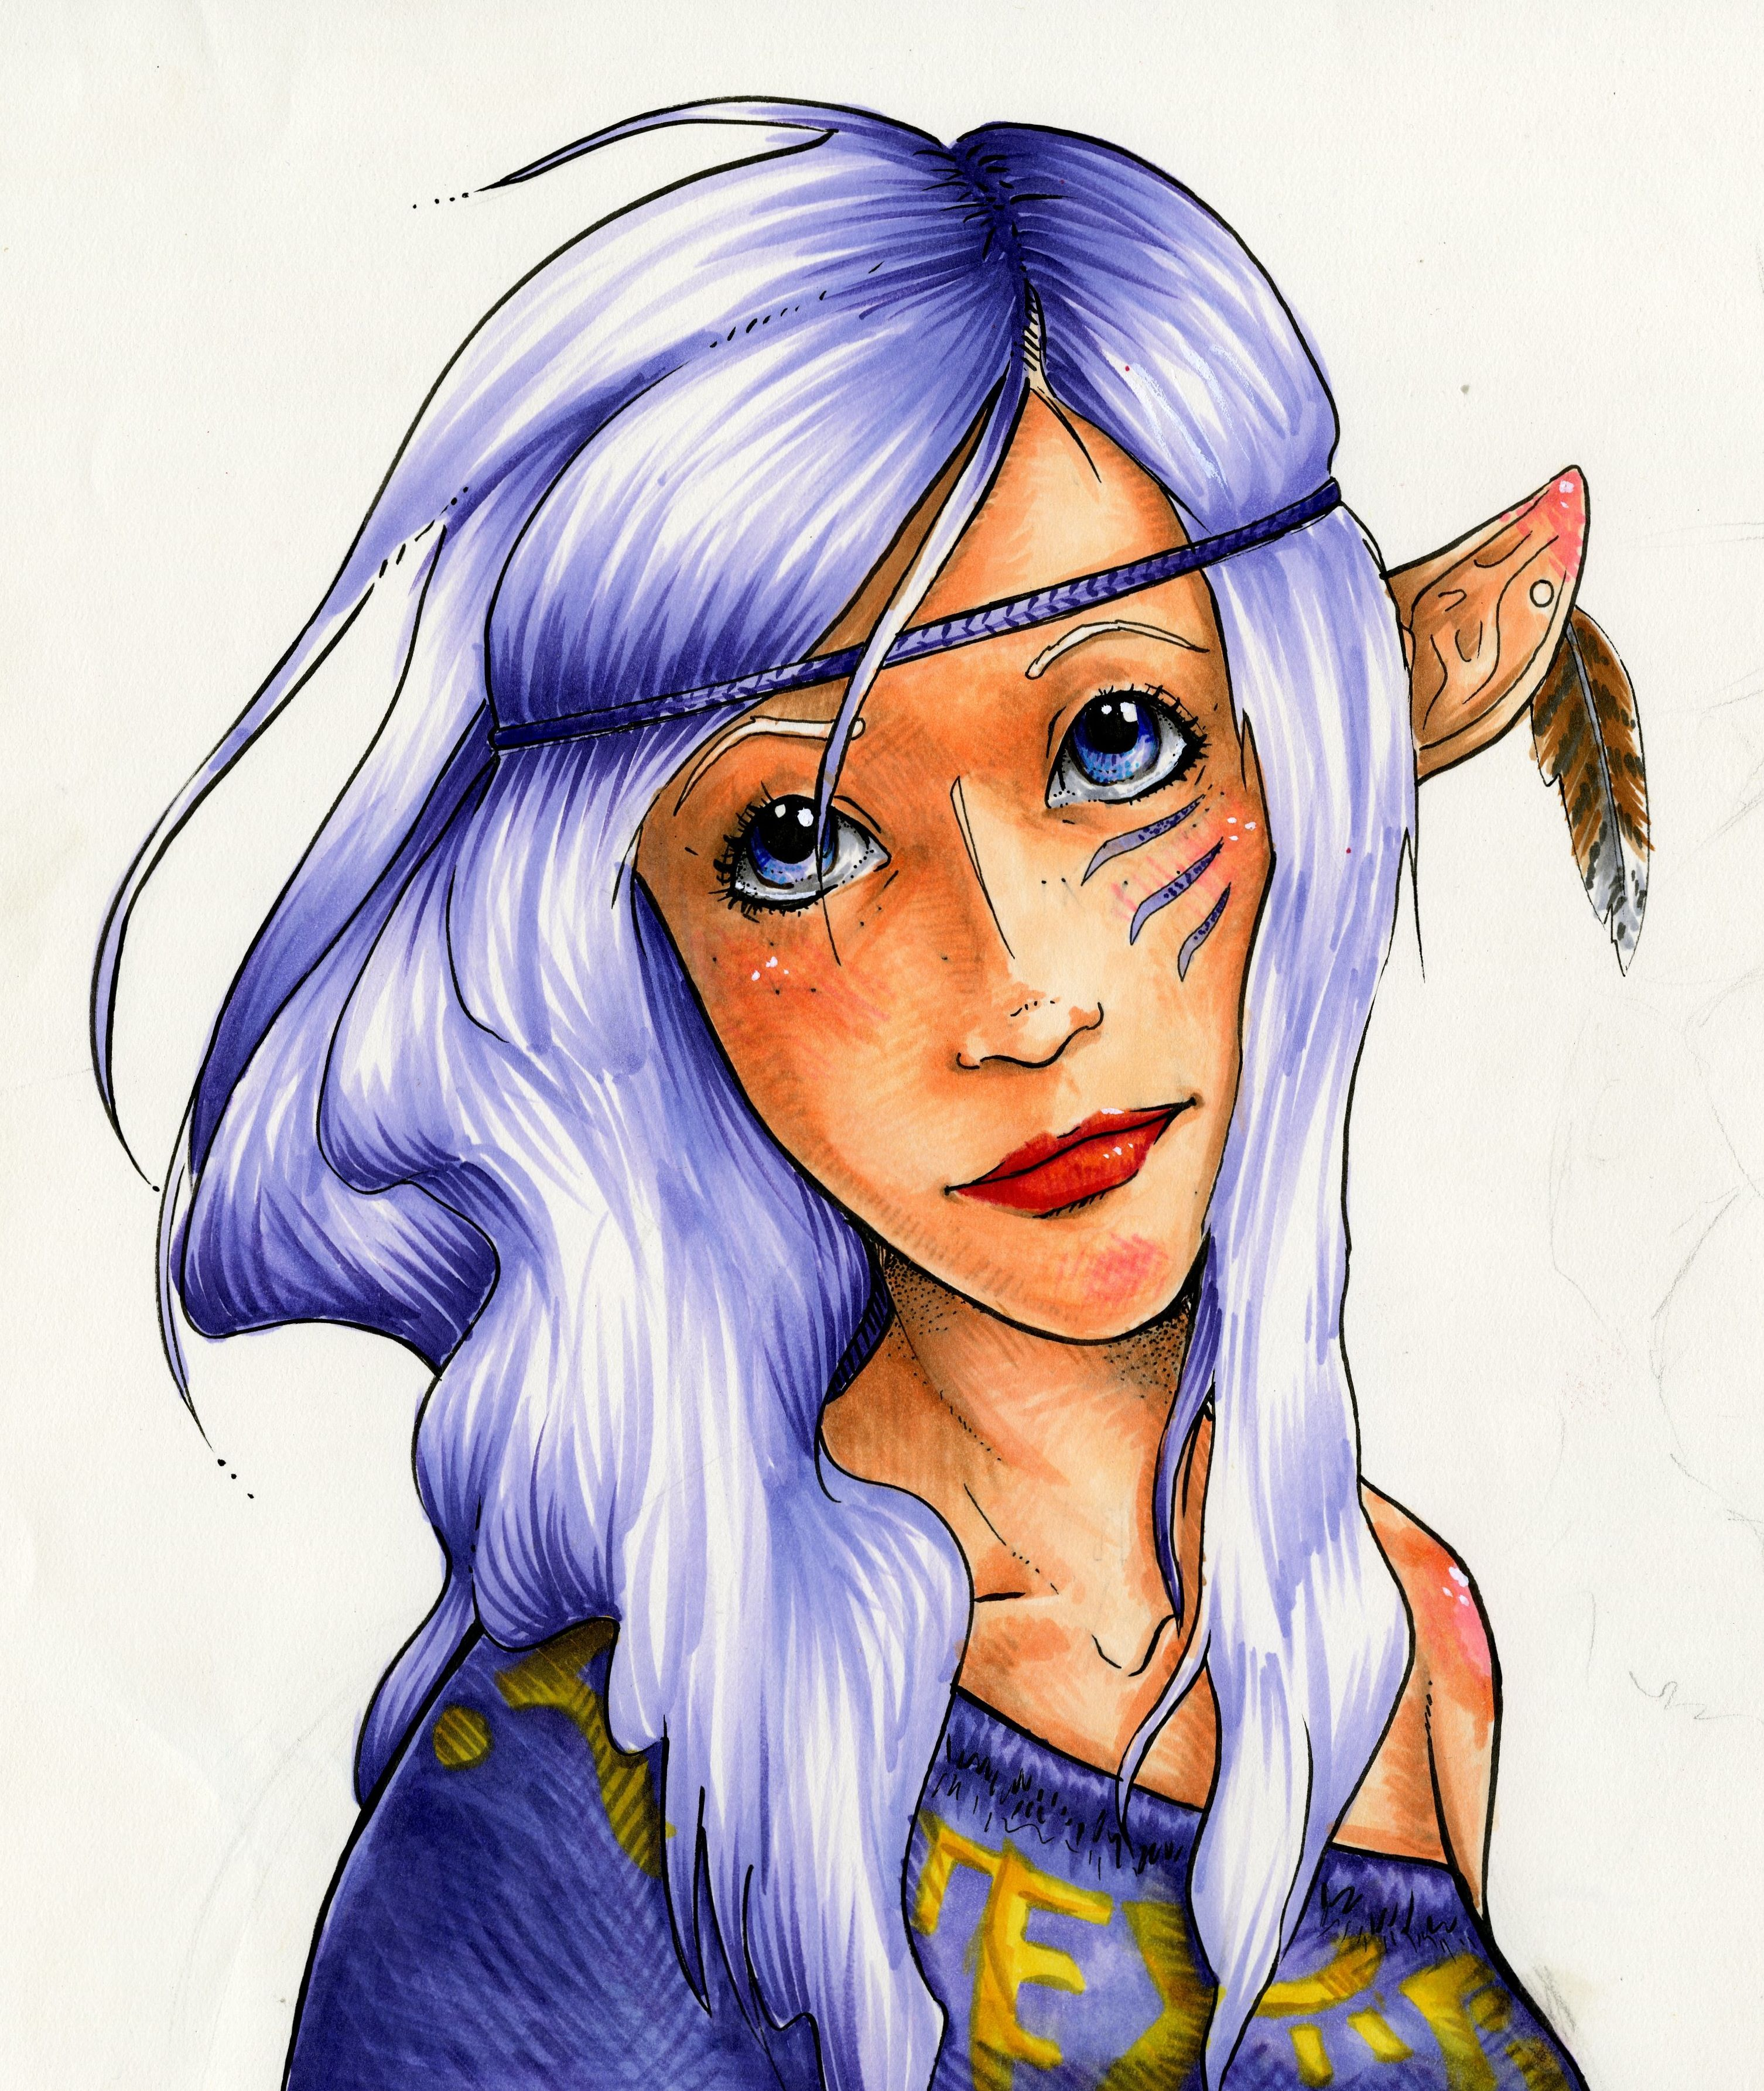 Copic Markers. Shading Neck And Hair. Markers Colors